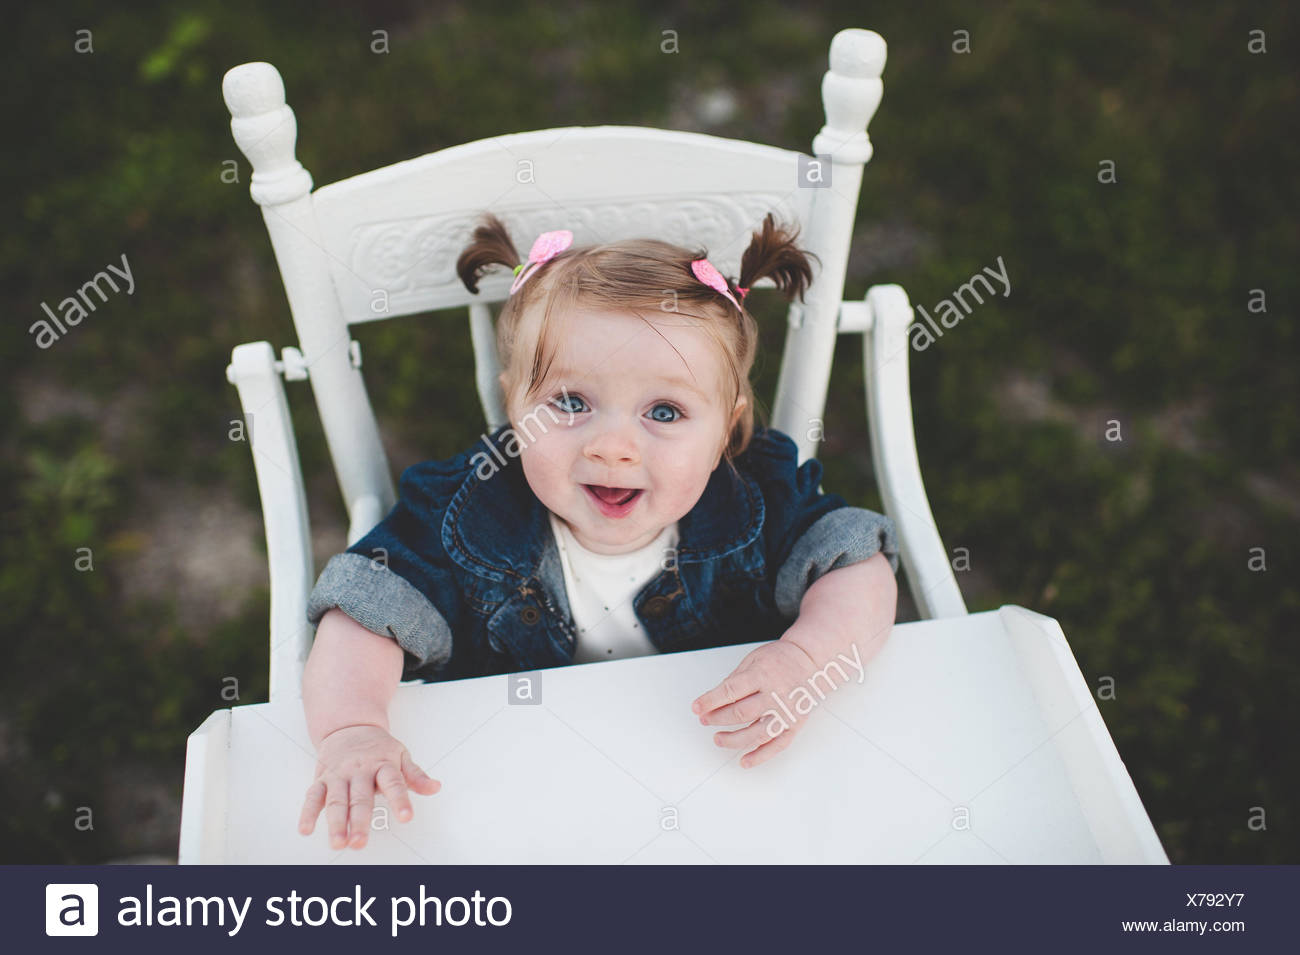 Portrait of baby girl in high chair Stock Photo